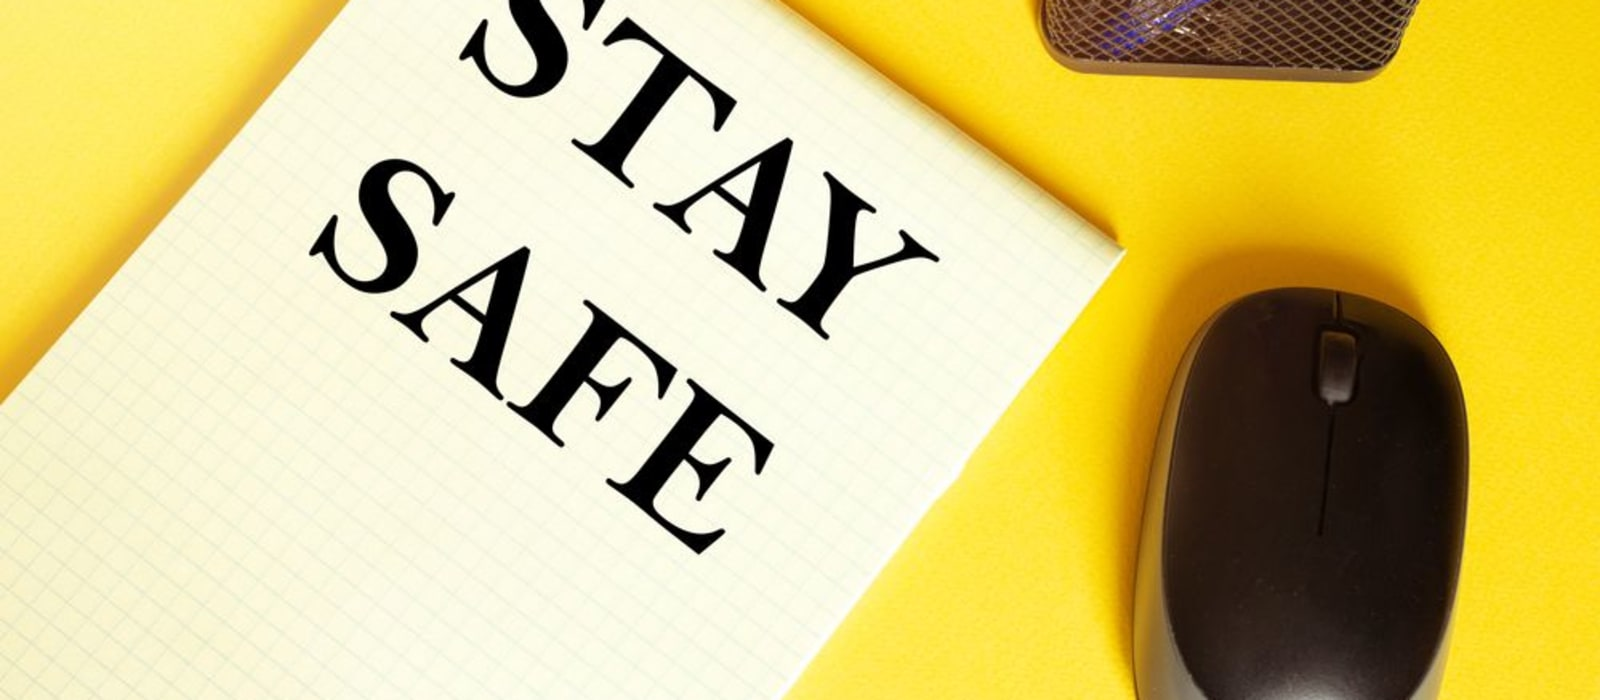 Top tips for staying safe when fundraising